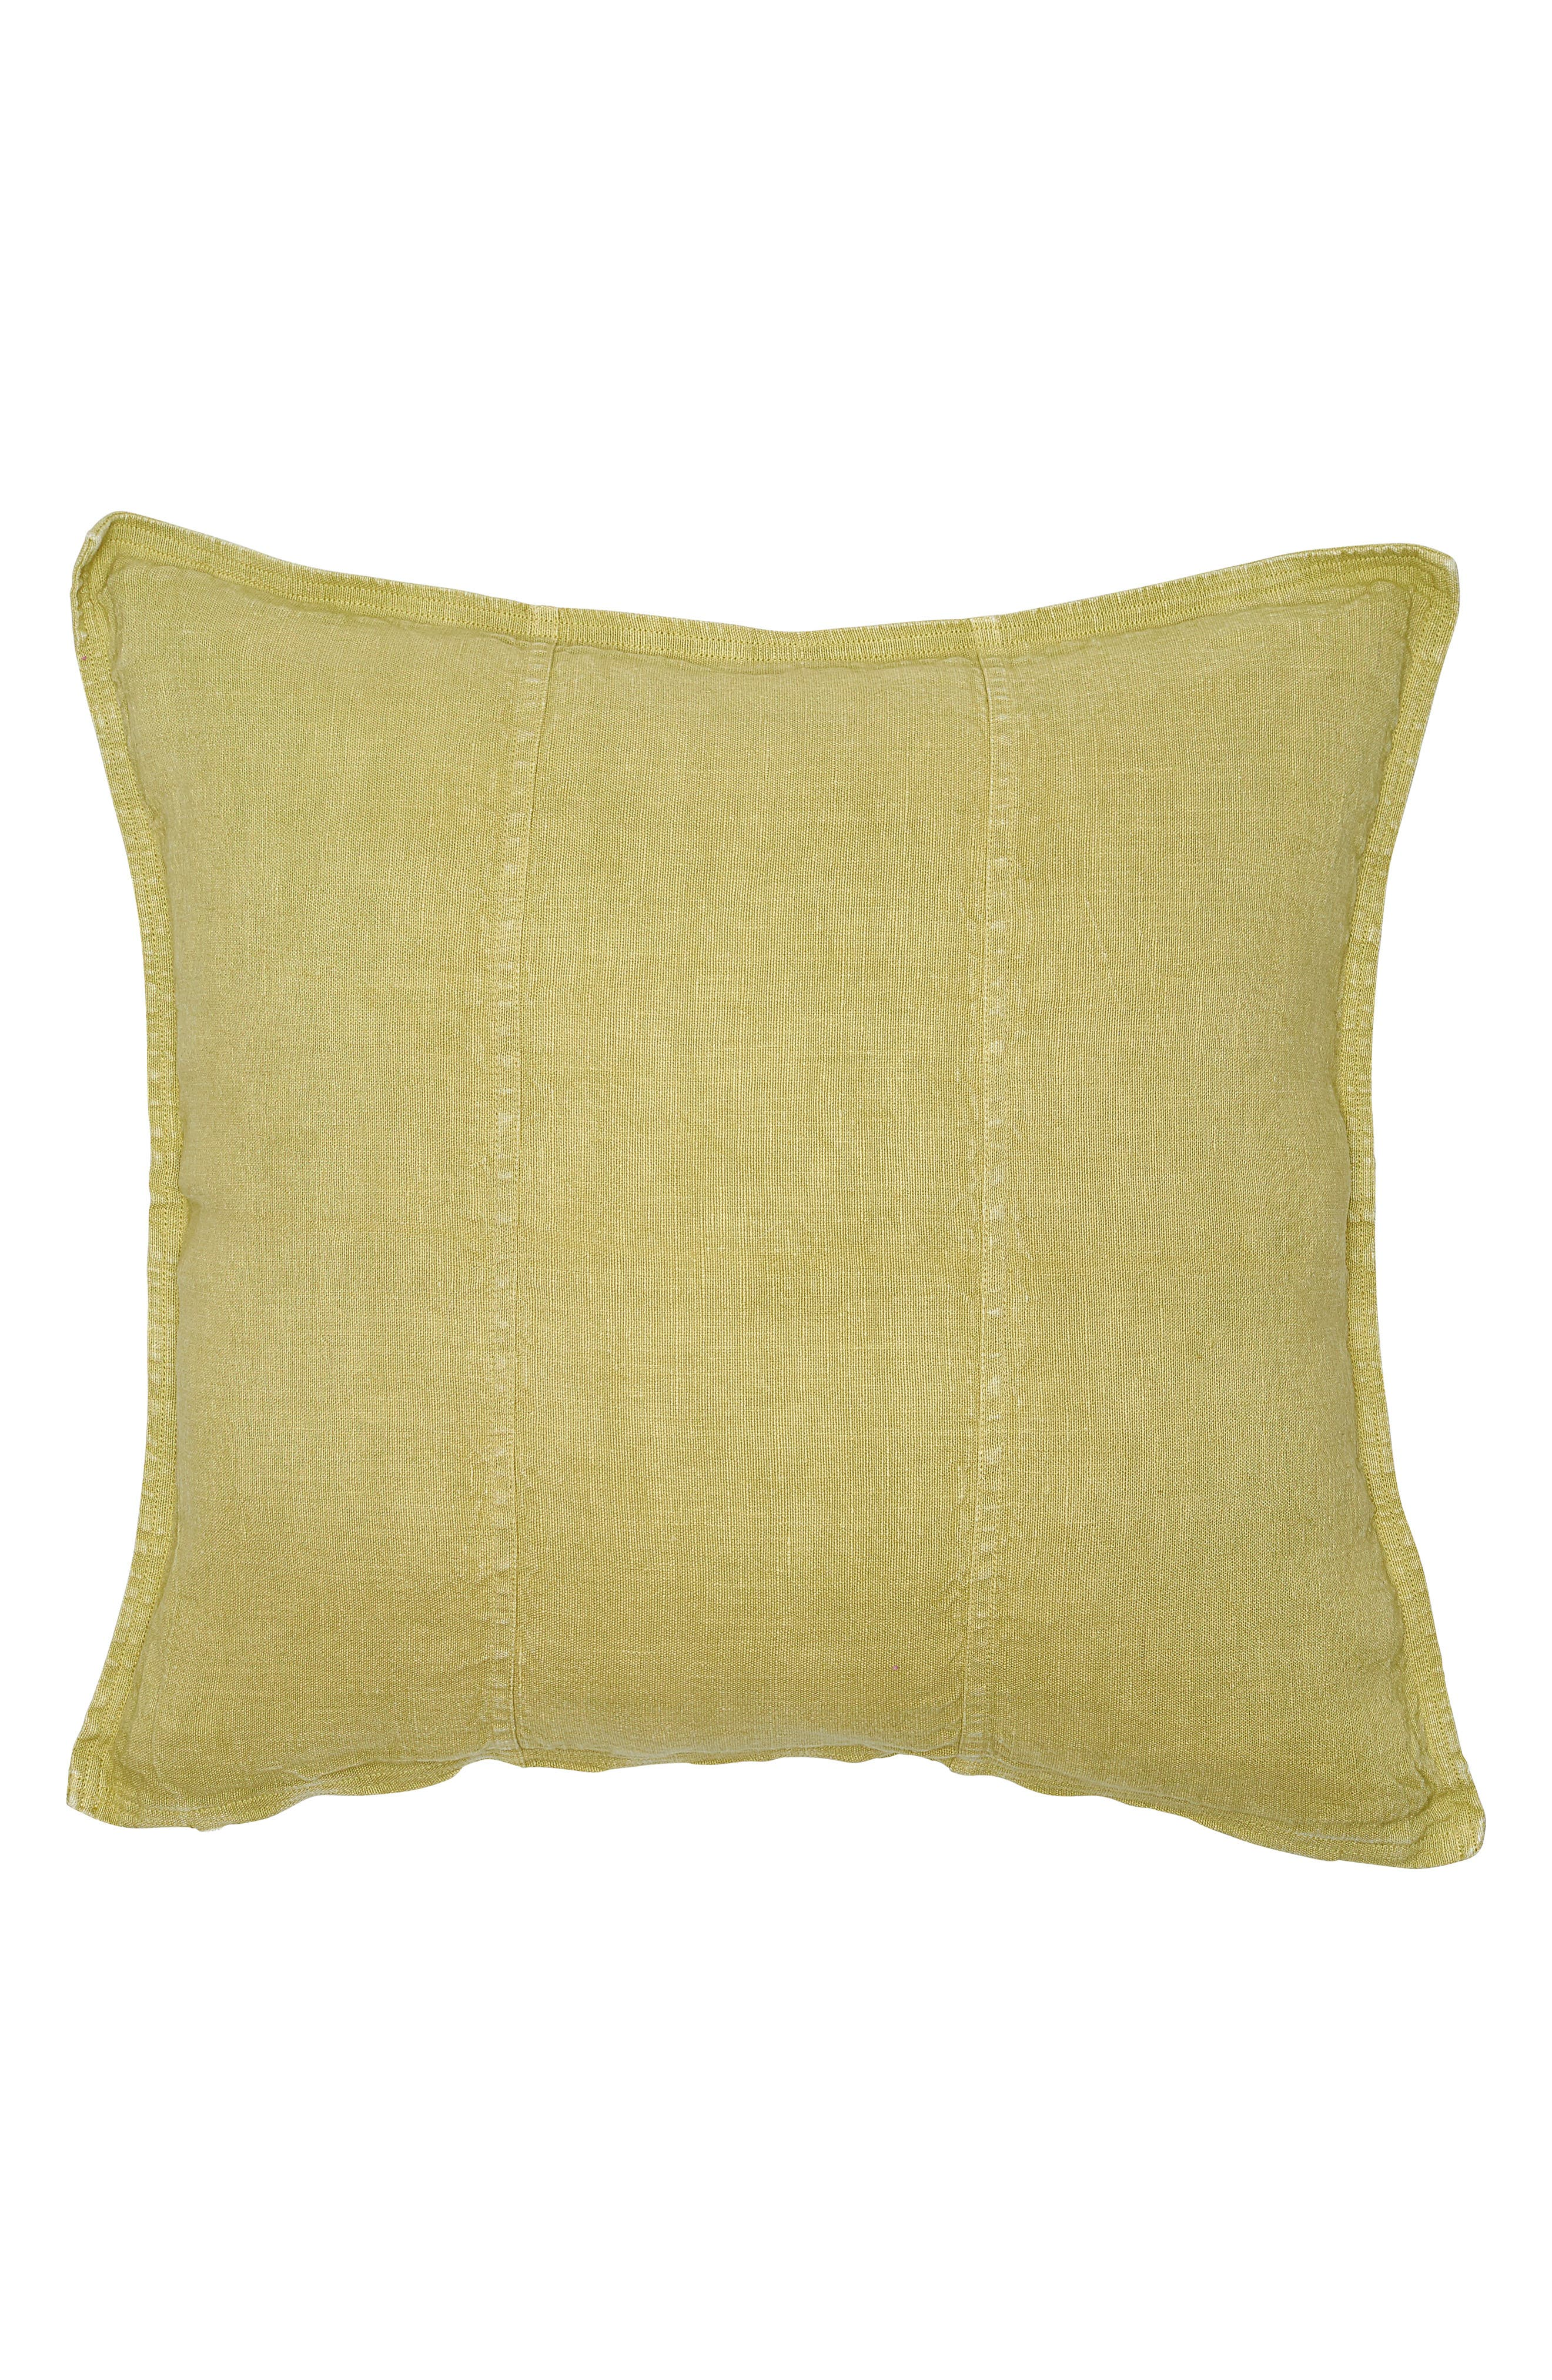 EADIE LIFESTYLE, Luca Pre Washed Linen Accent Pillow, Main thumbnail 1, color, LIME GREEN